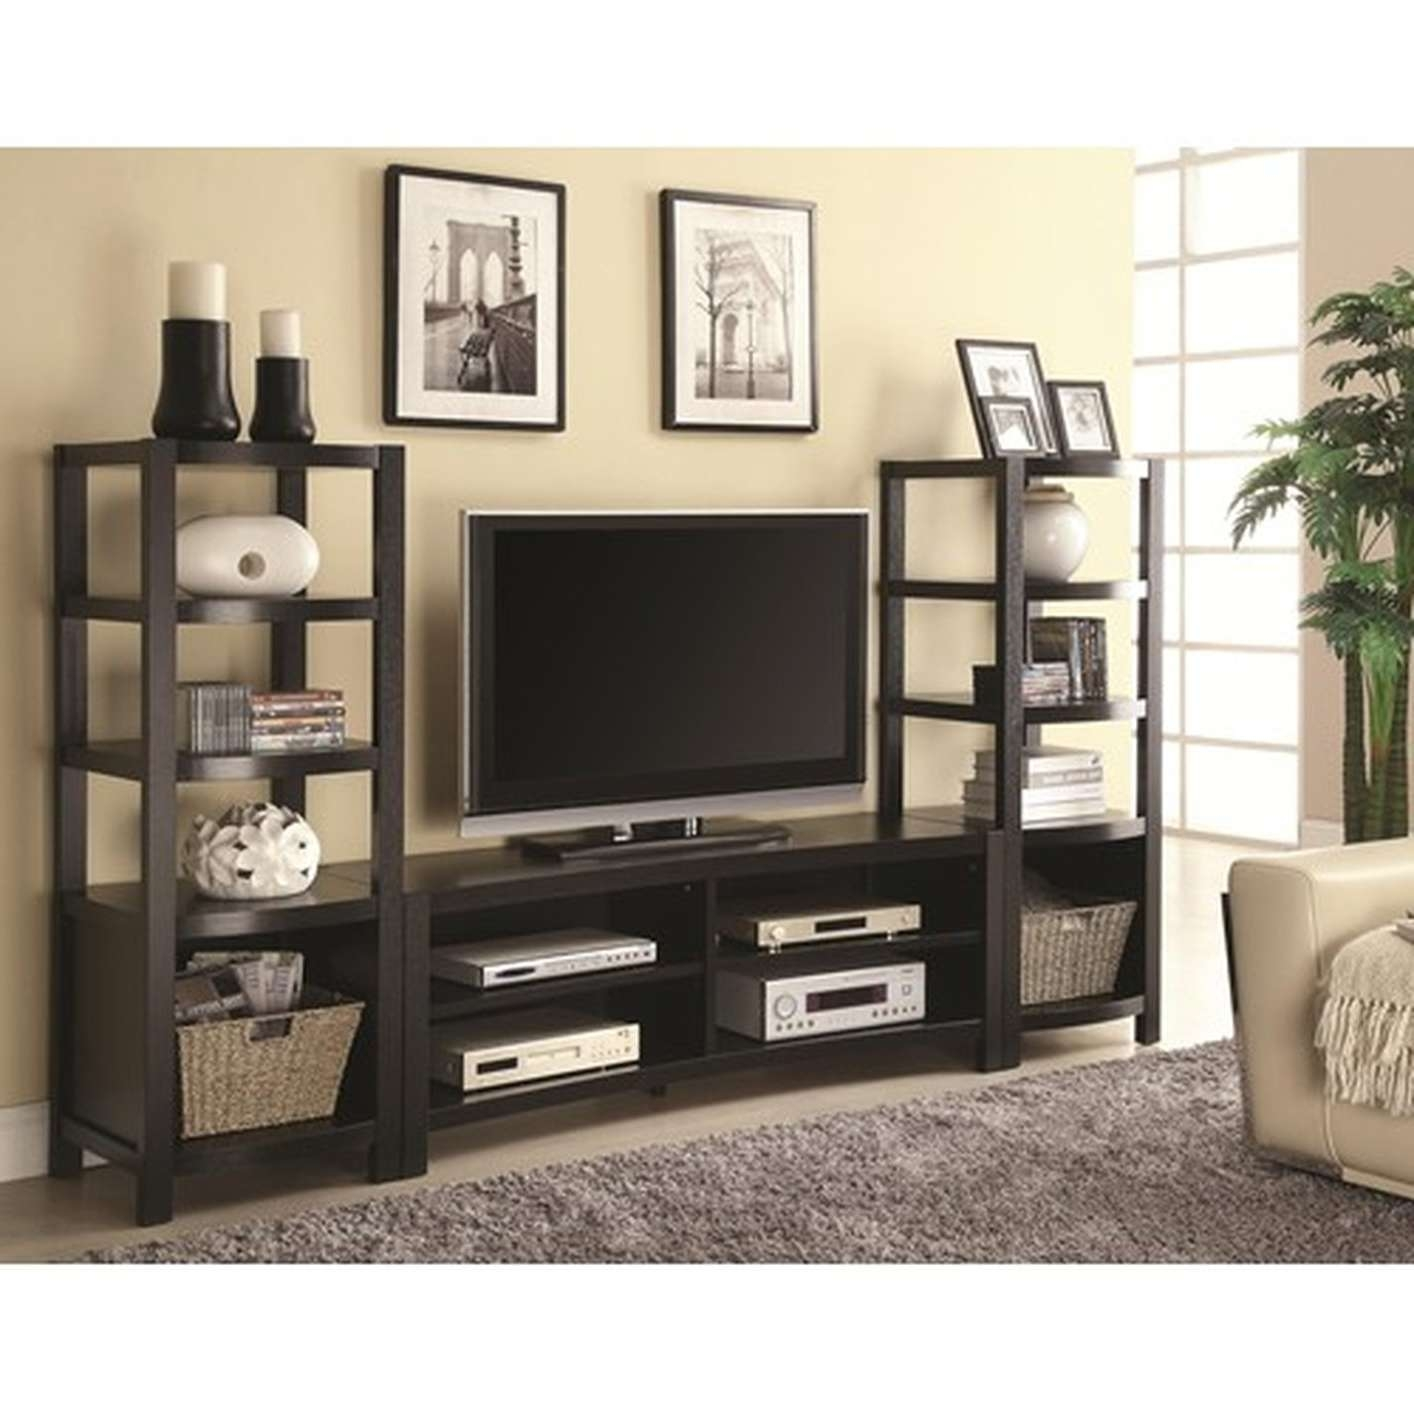 Brown Wood Tv Stand – Steal A Sofa Furniture Outlet Los Angeles Ca Pertaining To Brown Tv Stands (View 7 of 20)